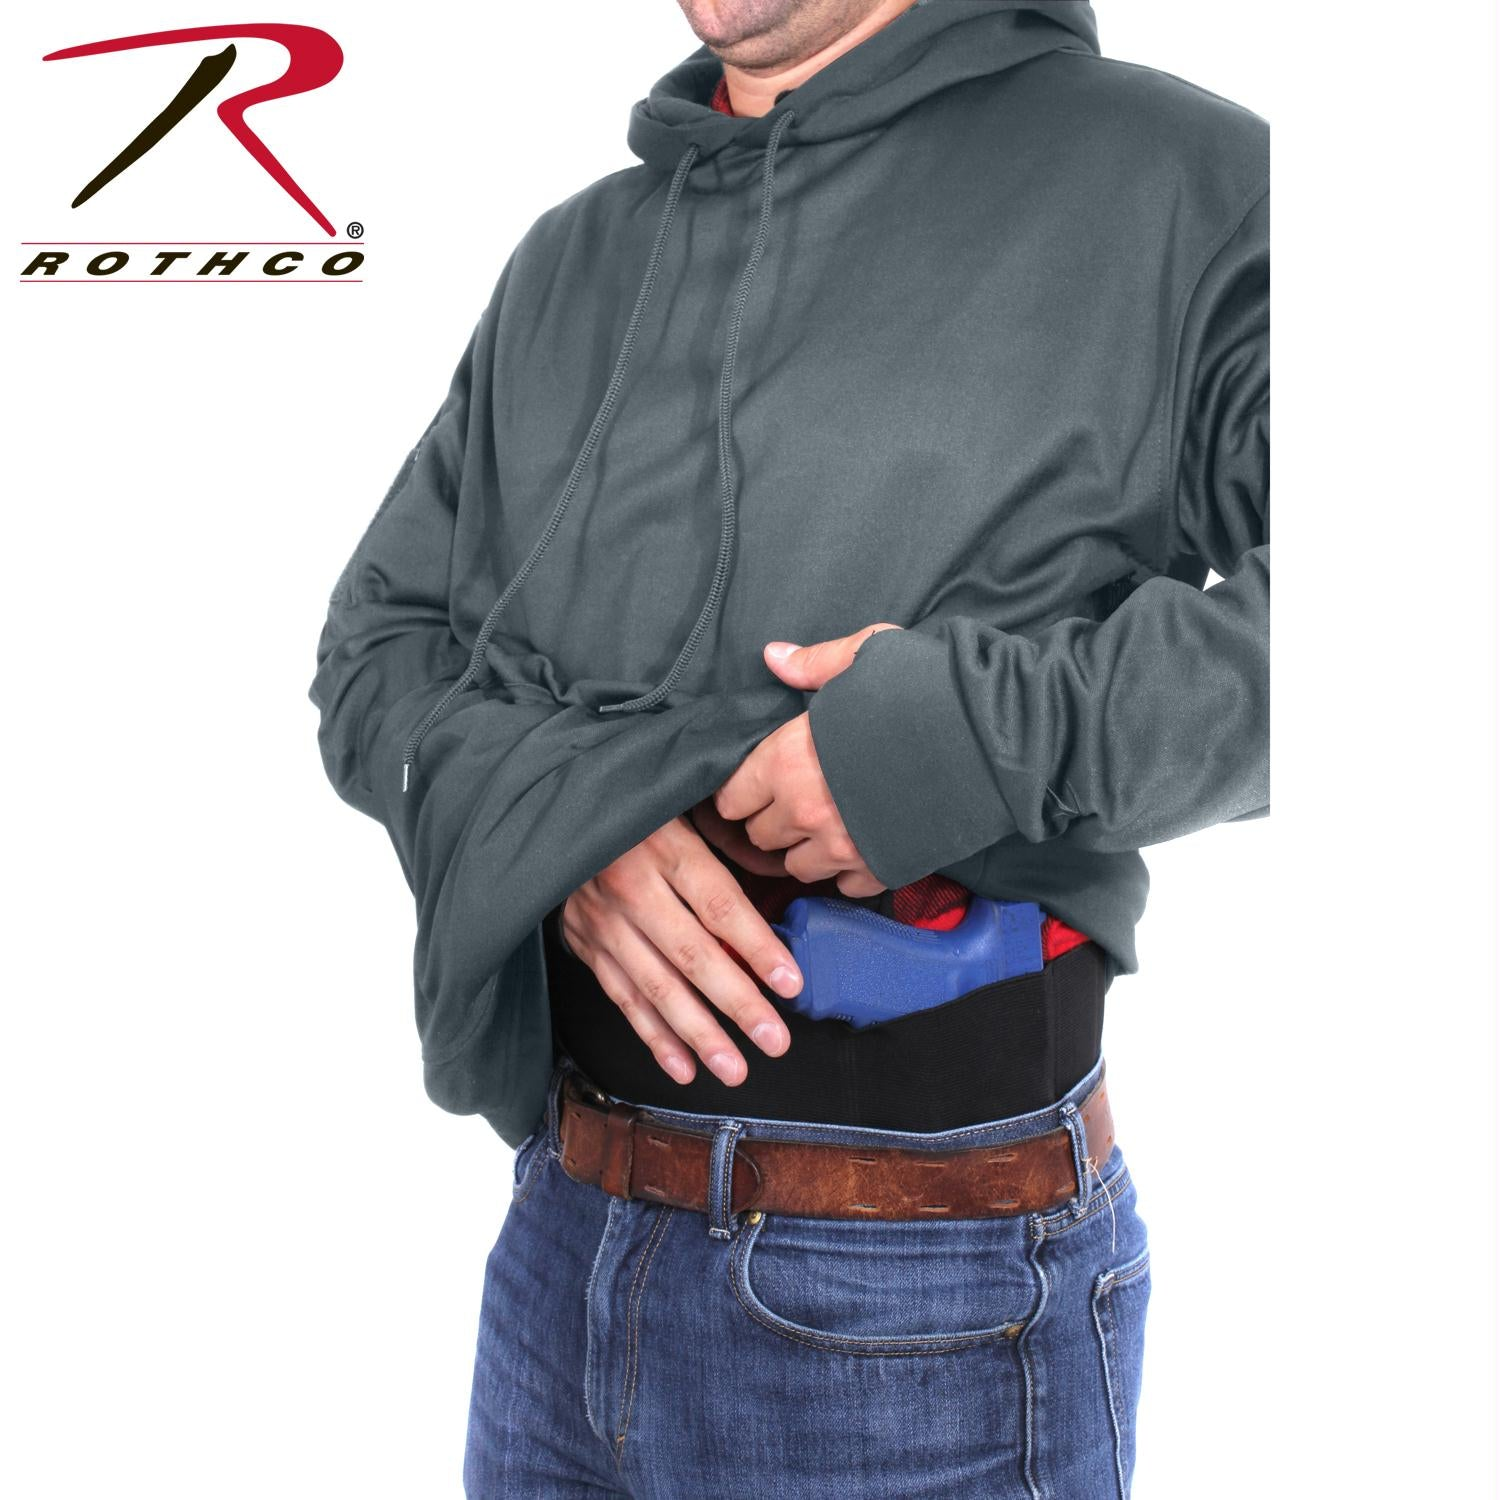 Rothco Concealed Carry Hoodie - Gun Metal Grey / L